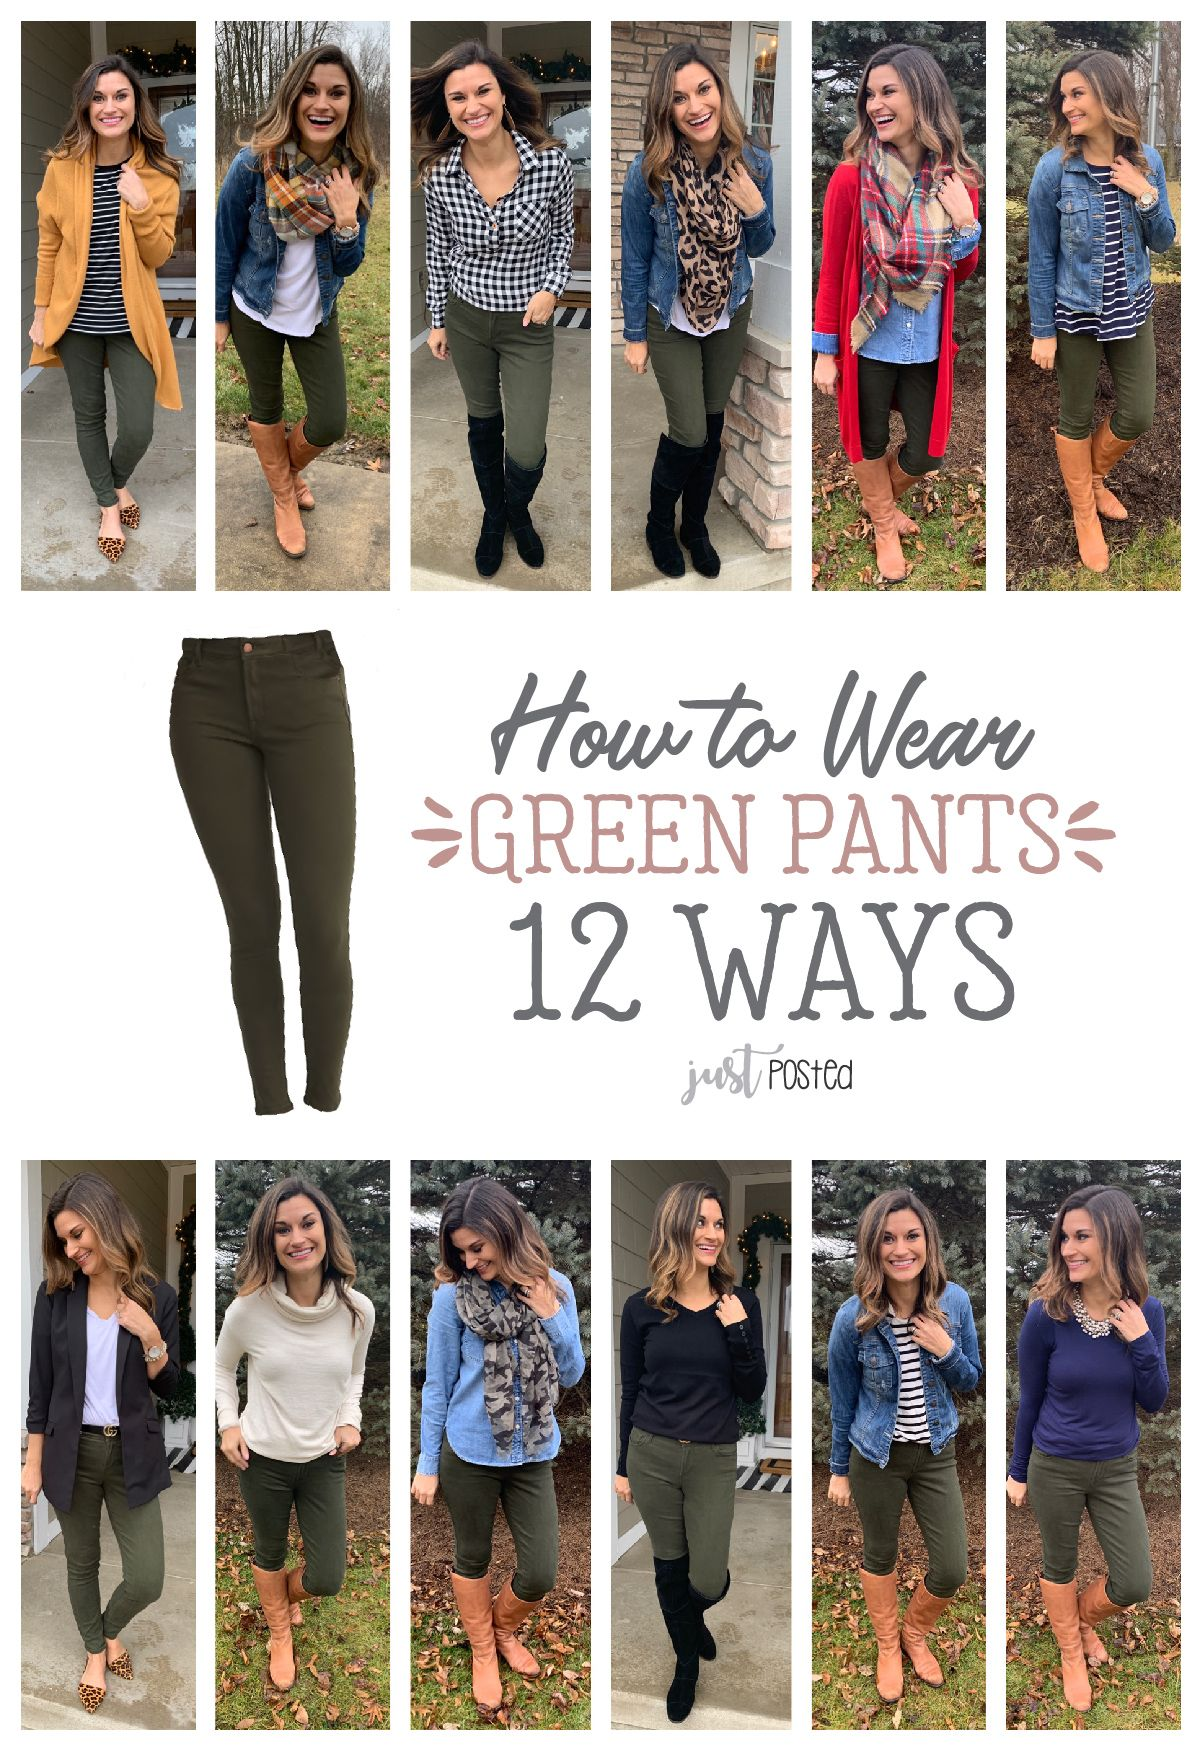 How to wear green pants 12 different ways!  #howtowear